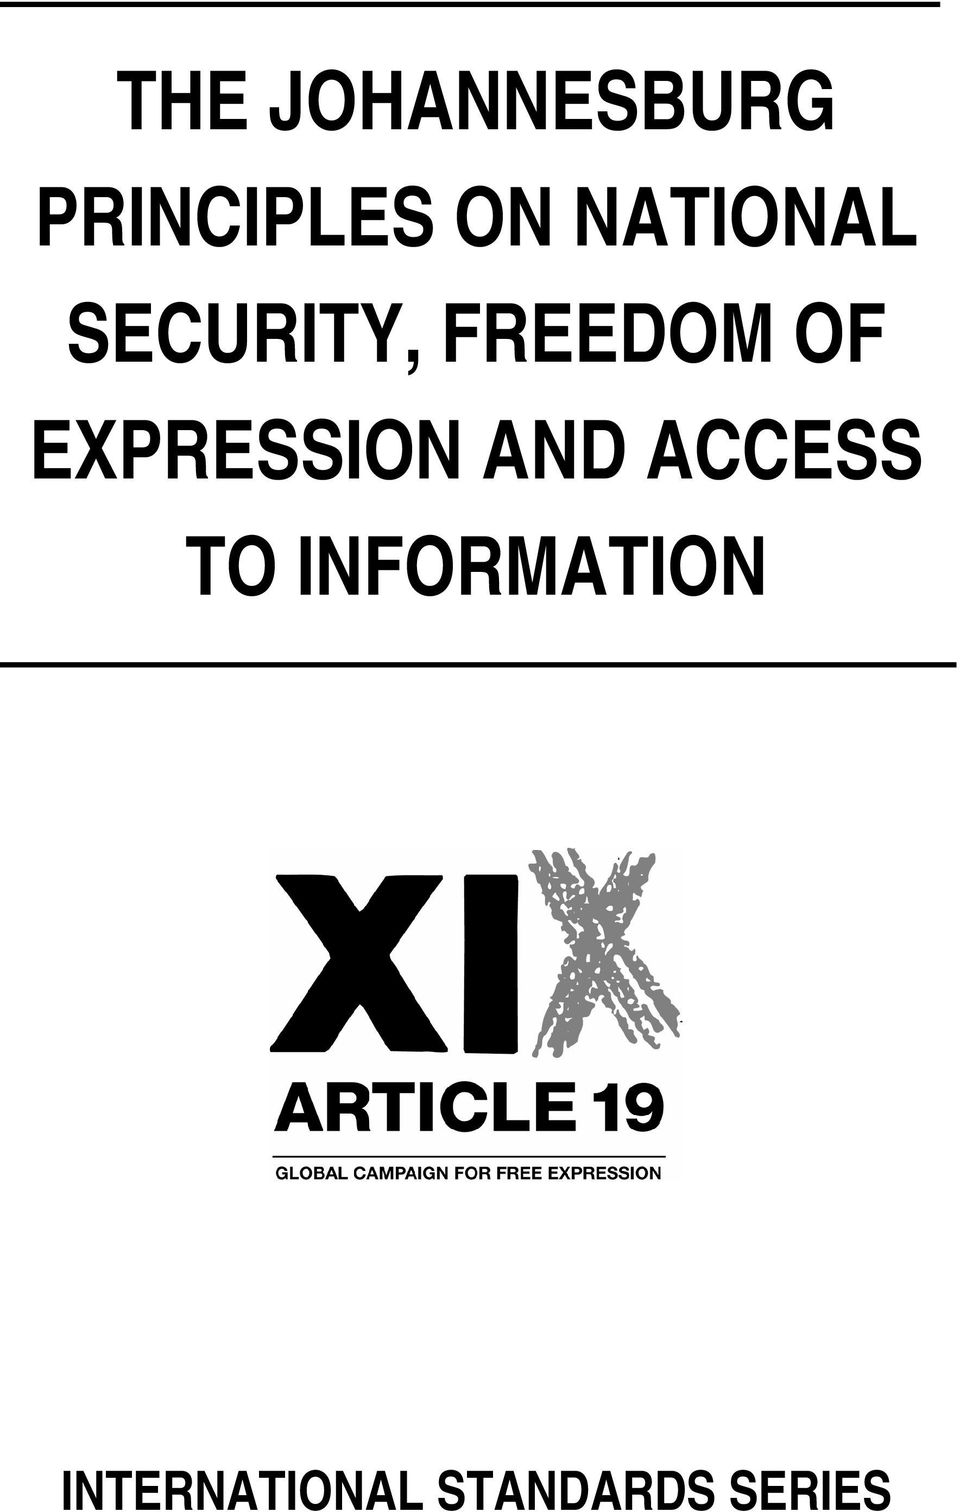 EXPRESSION AND ACCESS TO